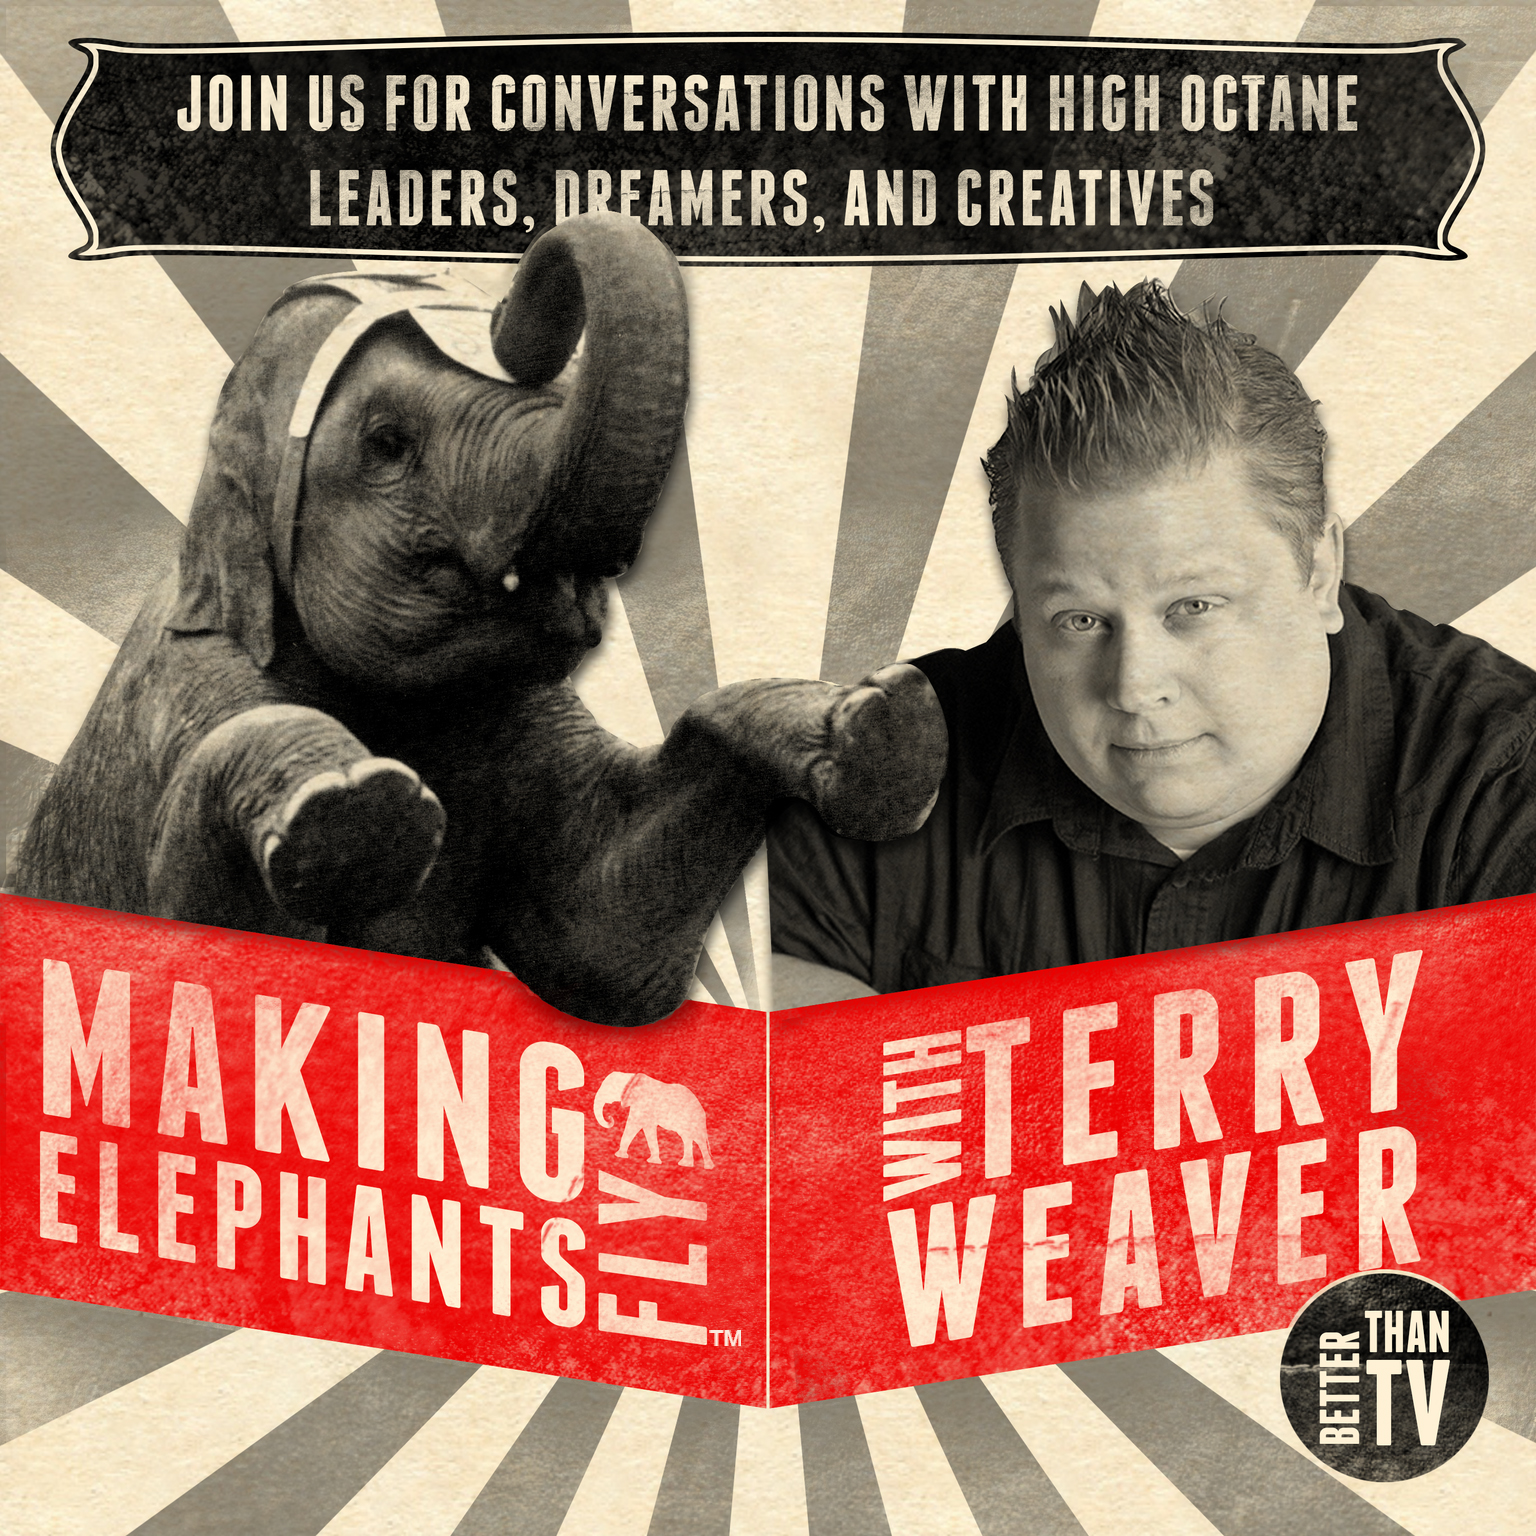 Making Elephants Fly | Conversations with High Octane Leaders, Dreamers, & Creatives  show art